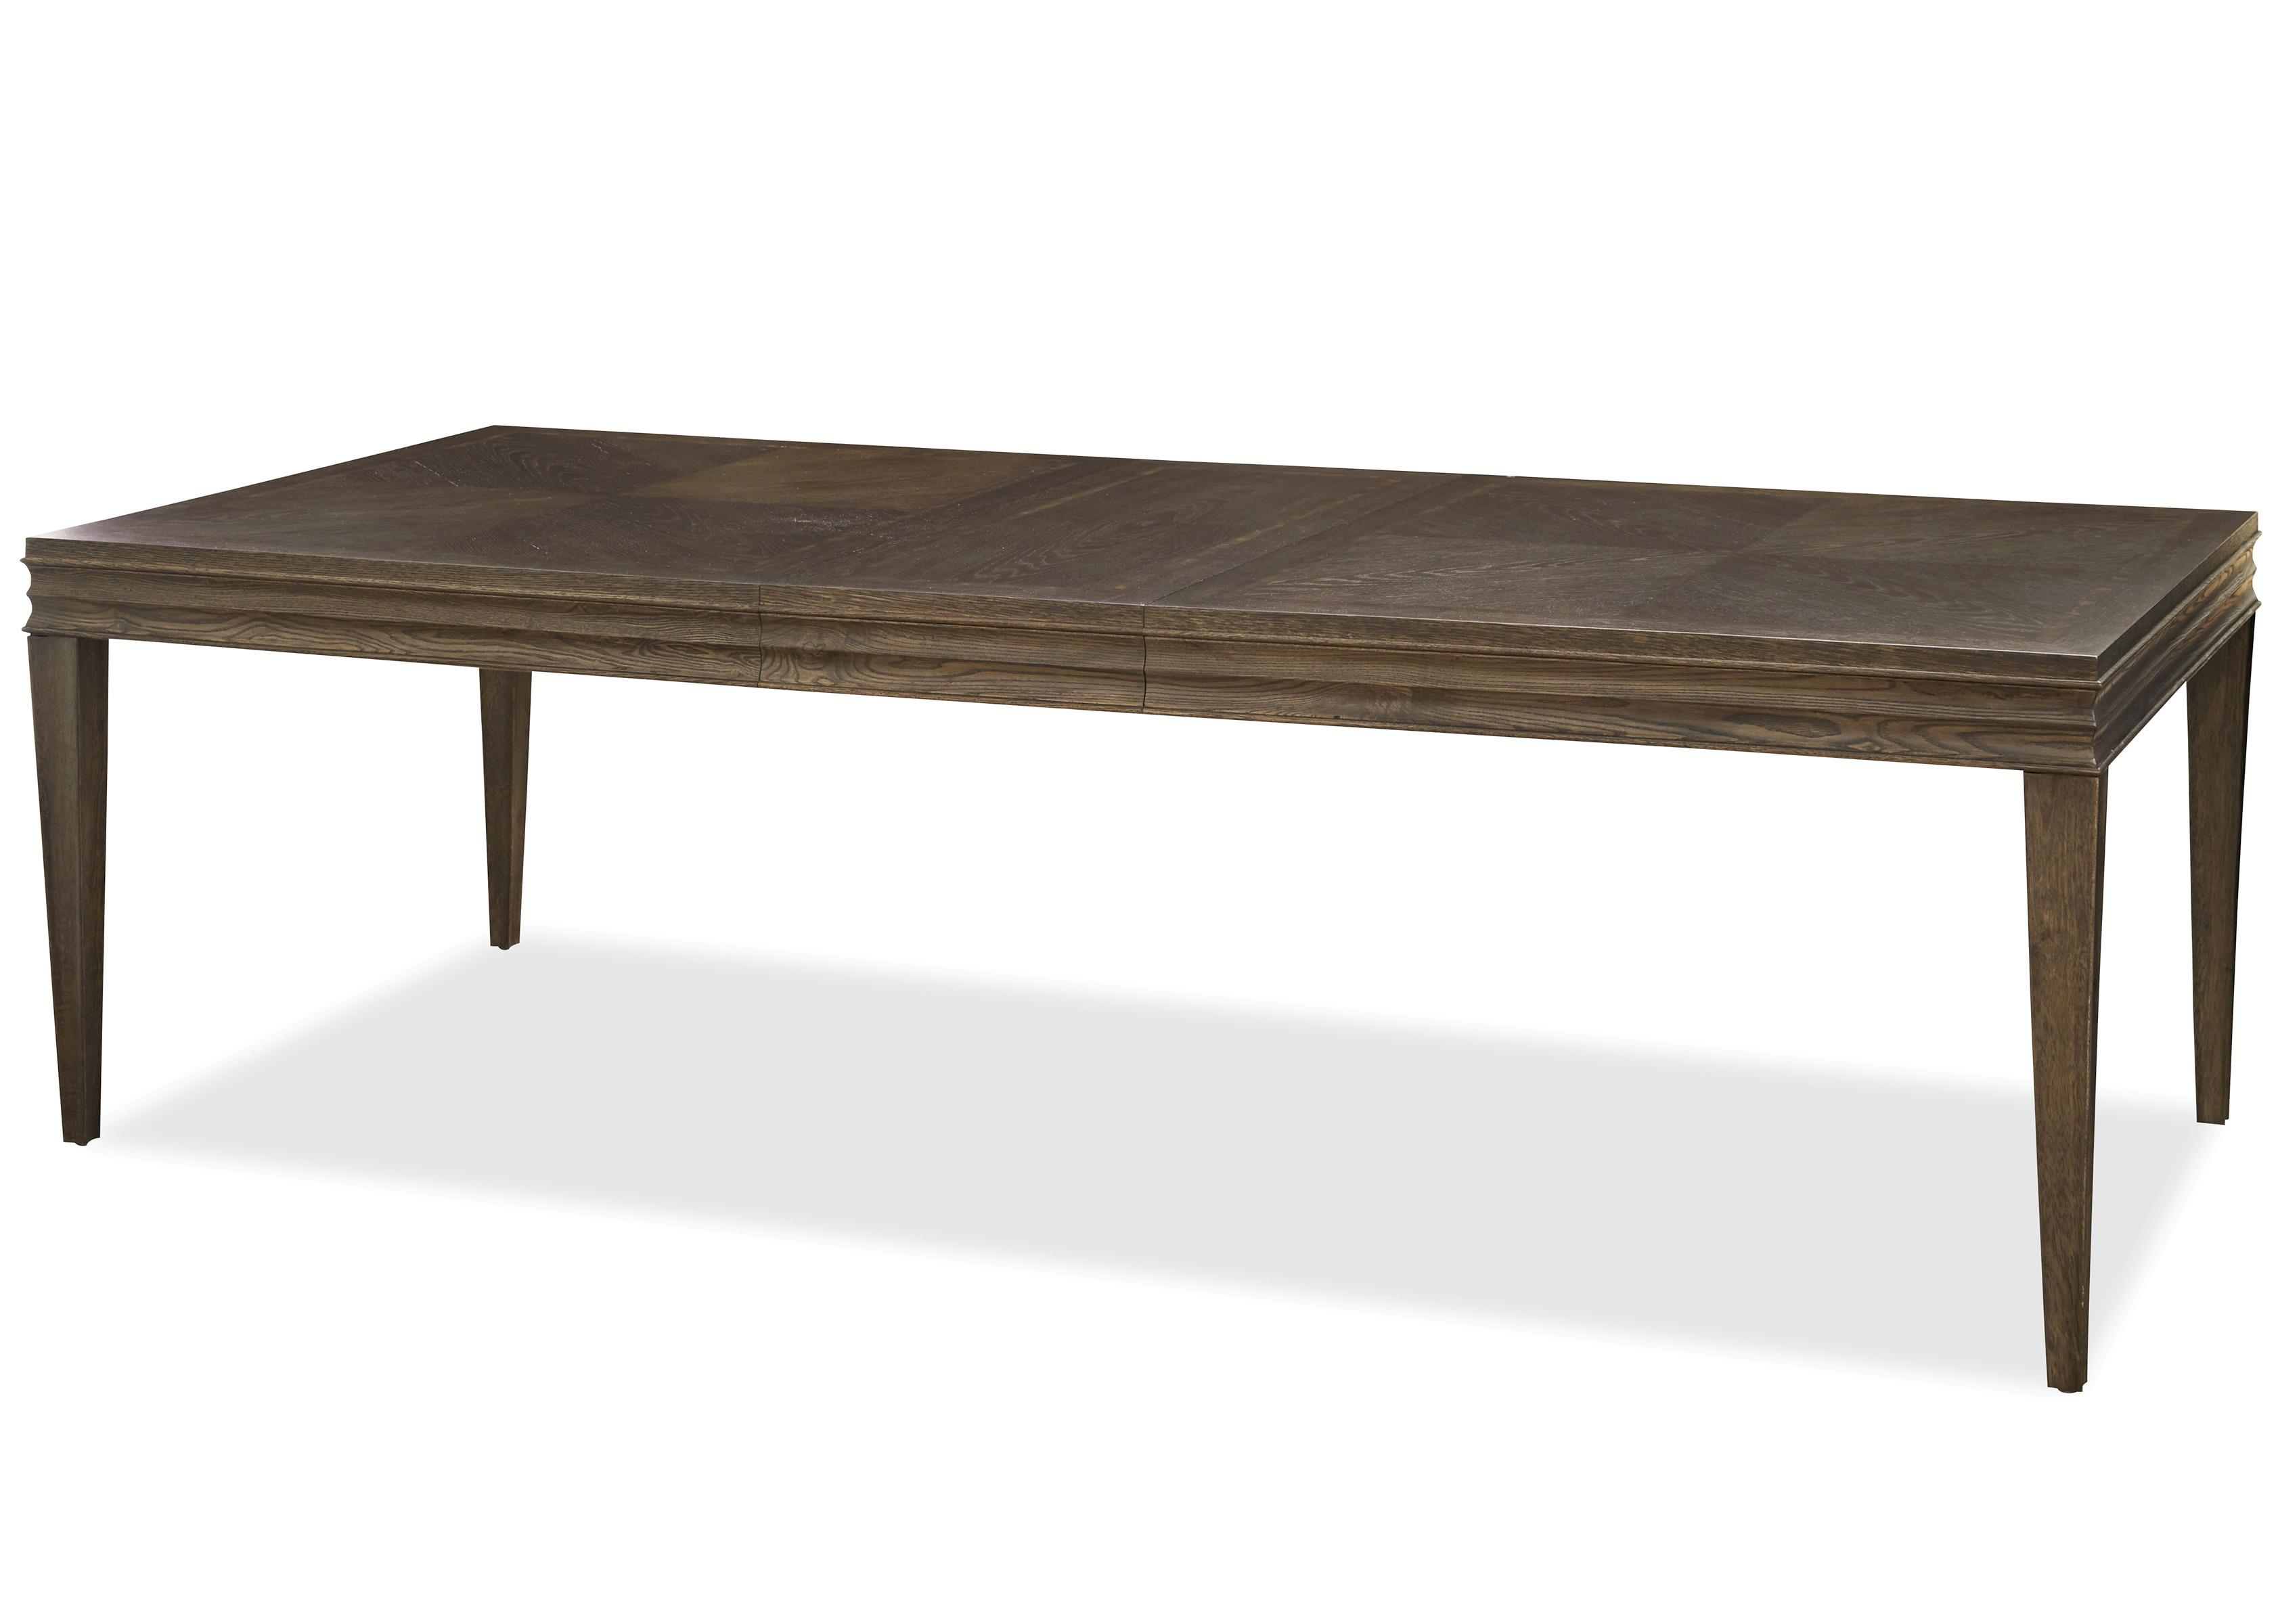 Universal California - Hollywood Hills Dining Table - Item Number: 475653